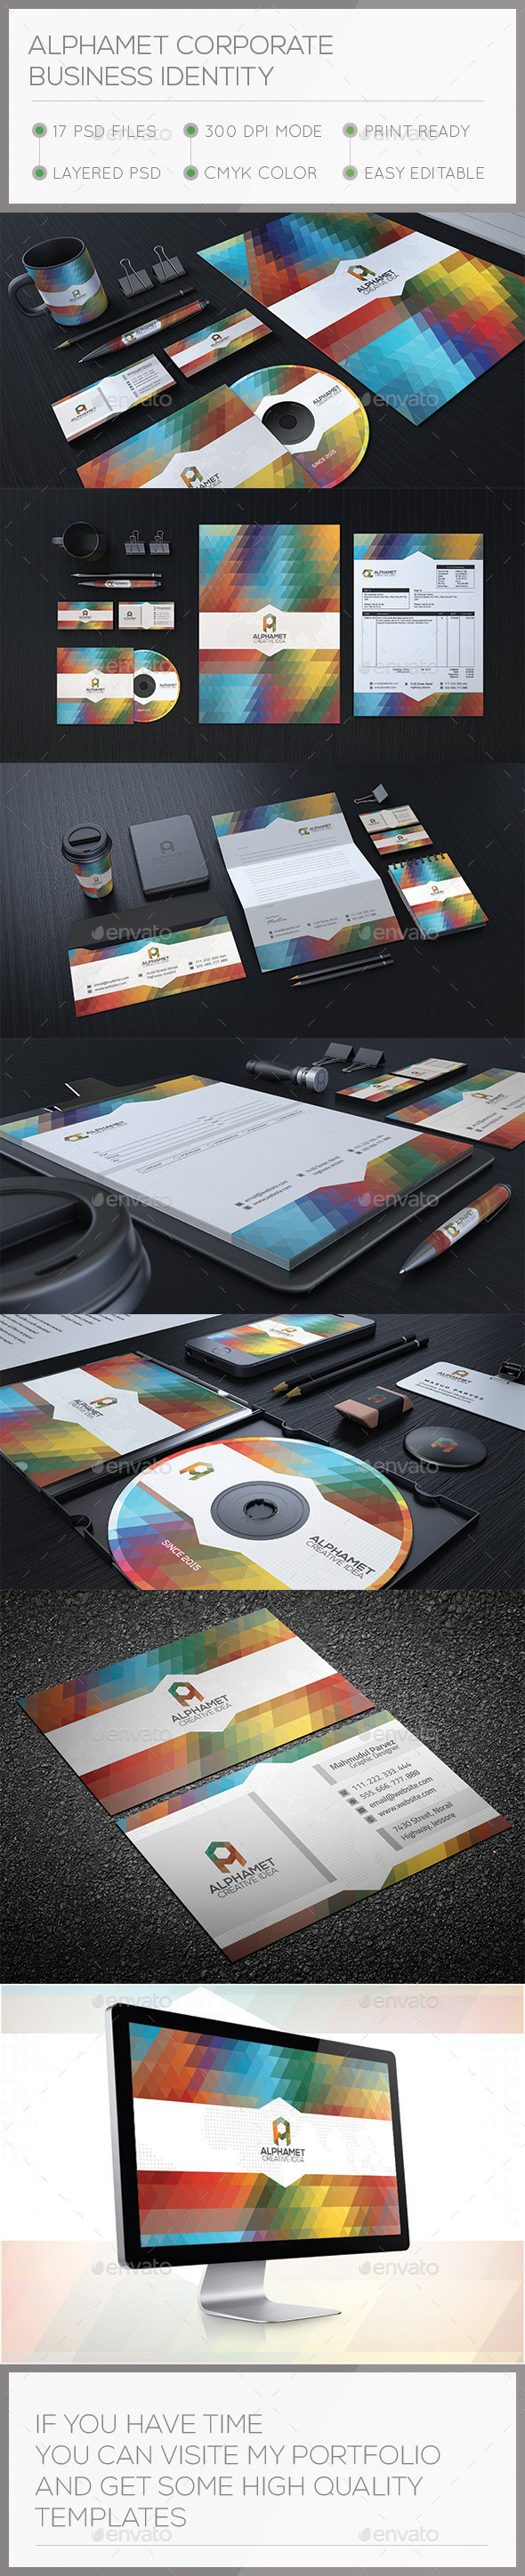 Alphamet Corporate Stationary Identity - Stationery Print Templates